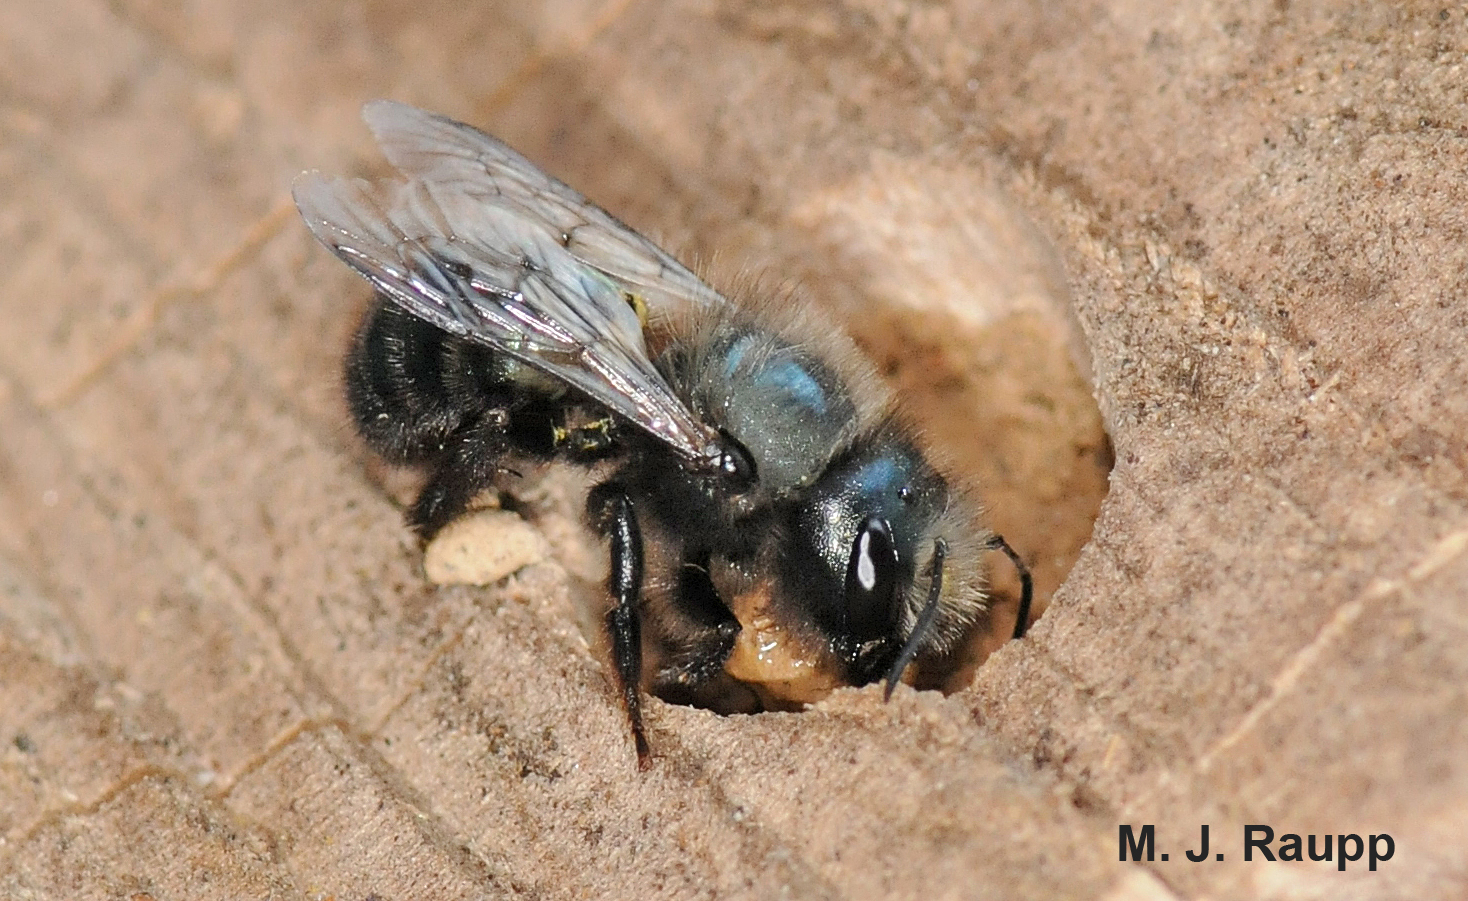 Blue orchard mason bees are early season pollinators of some of our most important fruit crops, like apples and cherries.